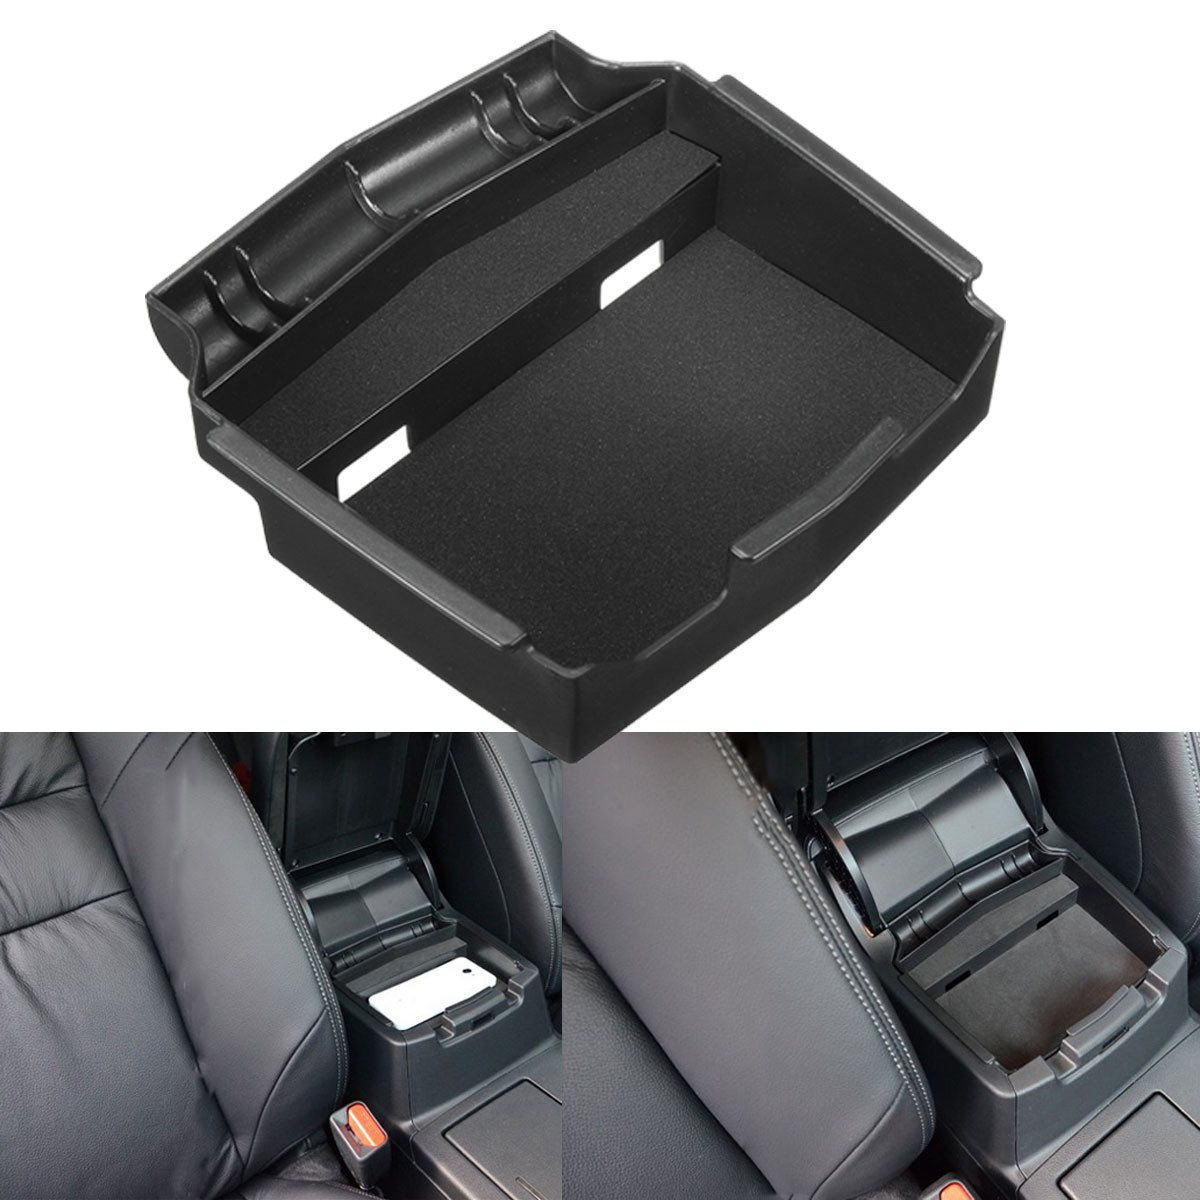 Car Multifunction Central Storage Box For Honda CRV 2012 2013 2014 2015 2016 Interior Accessories Stowing Tidying